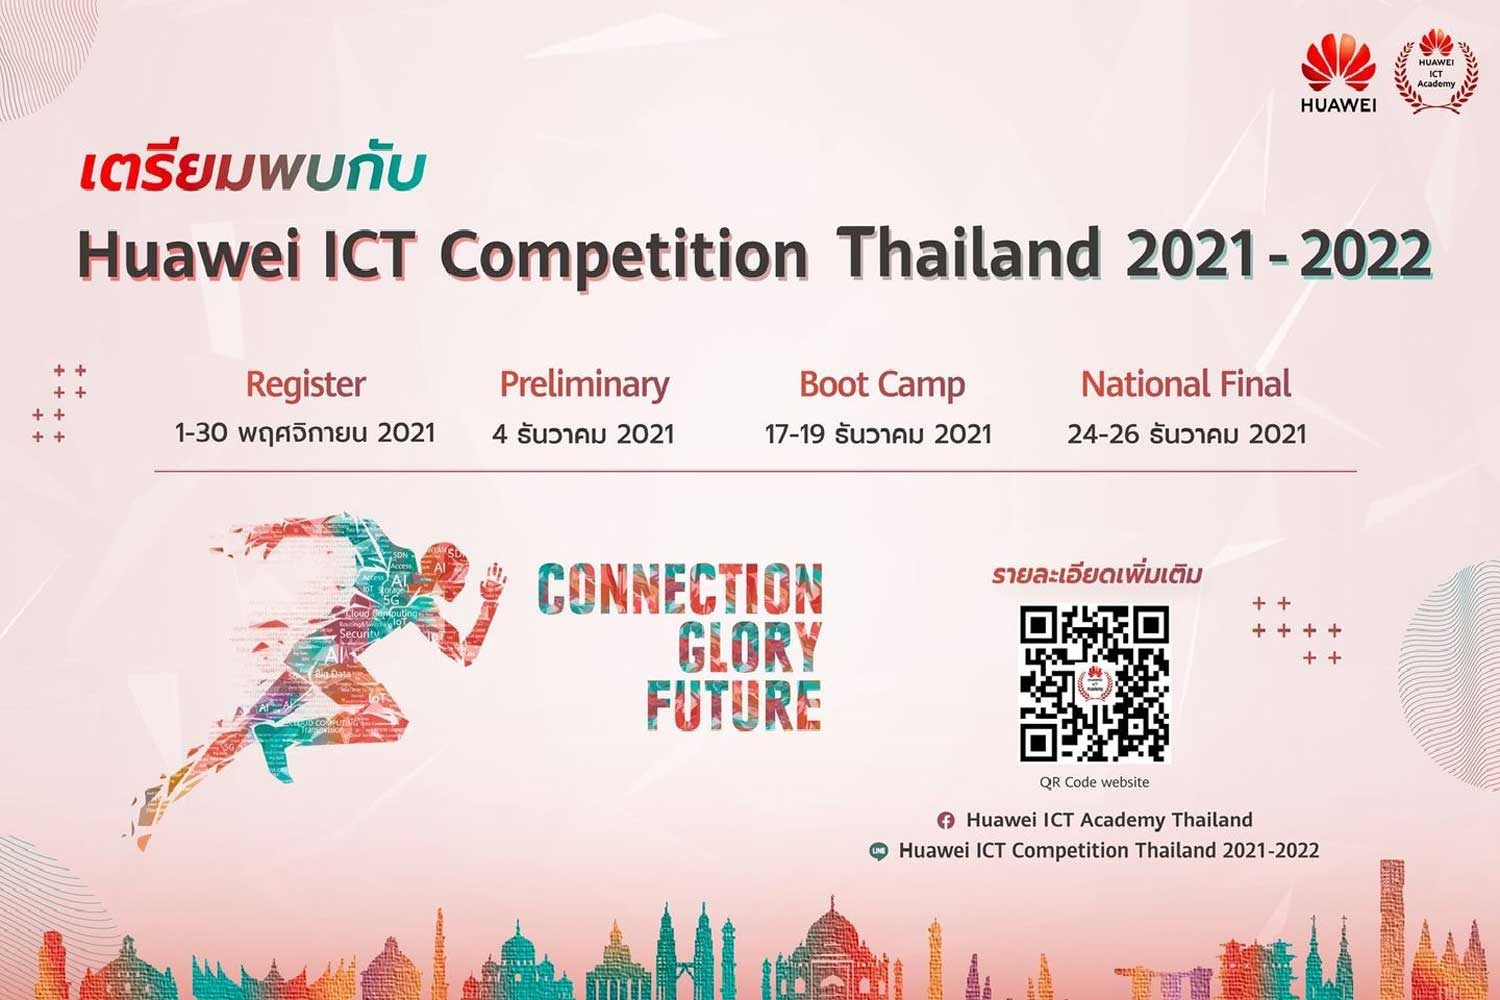 Huawei launches ICT competition 2021-2022 in Thailand